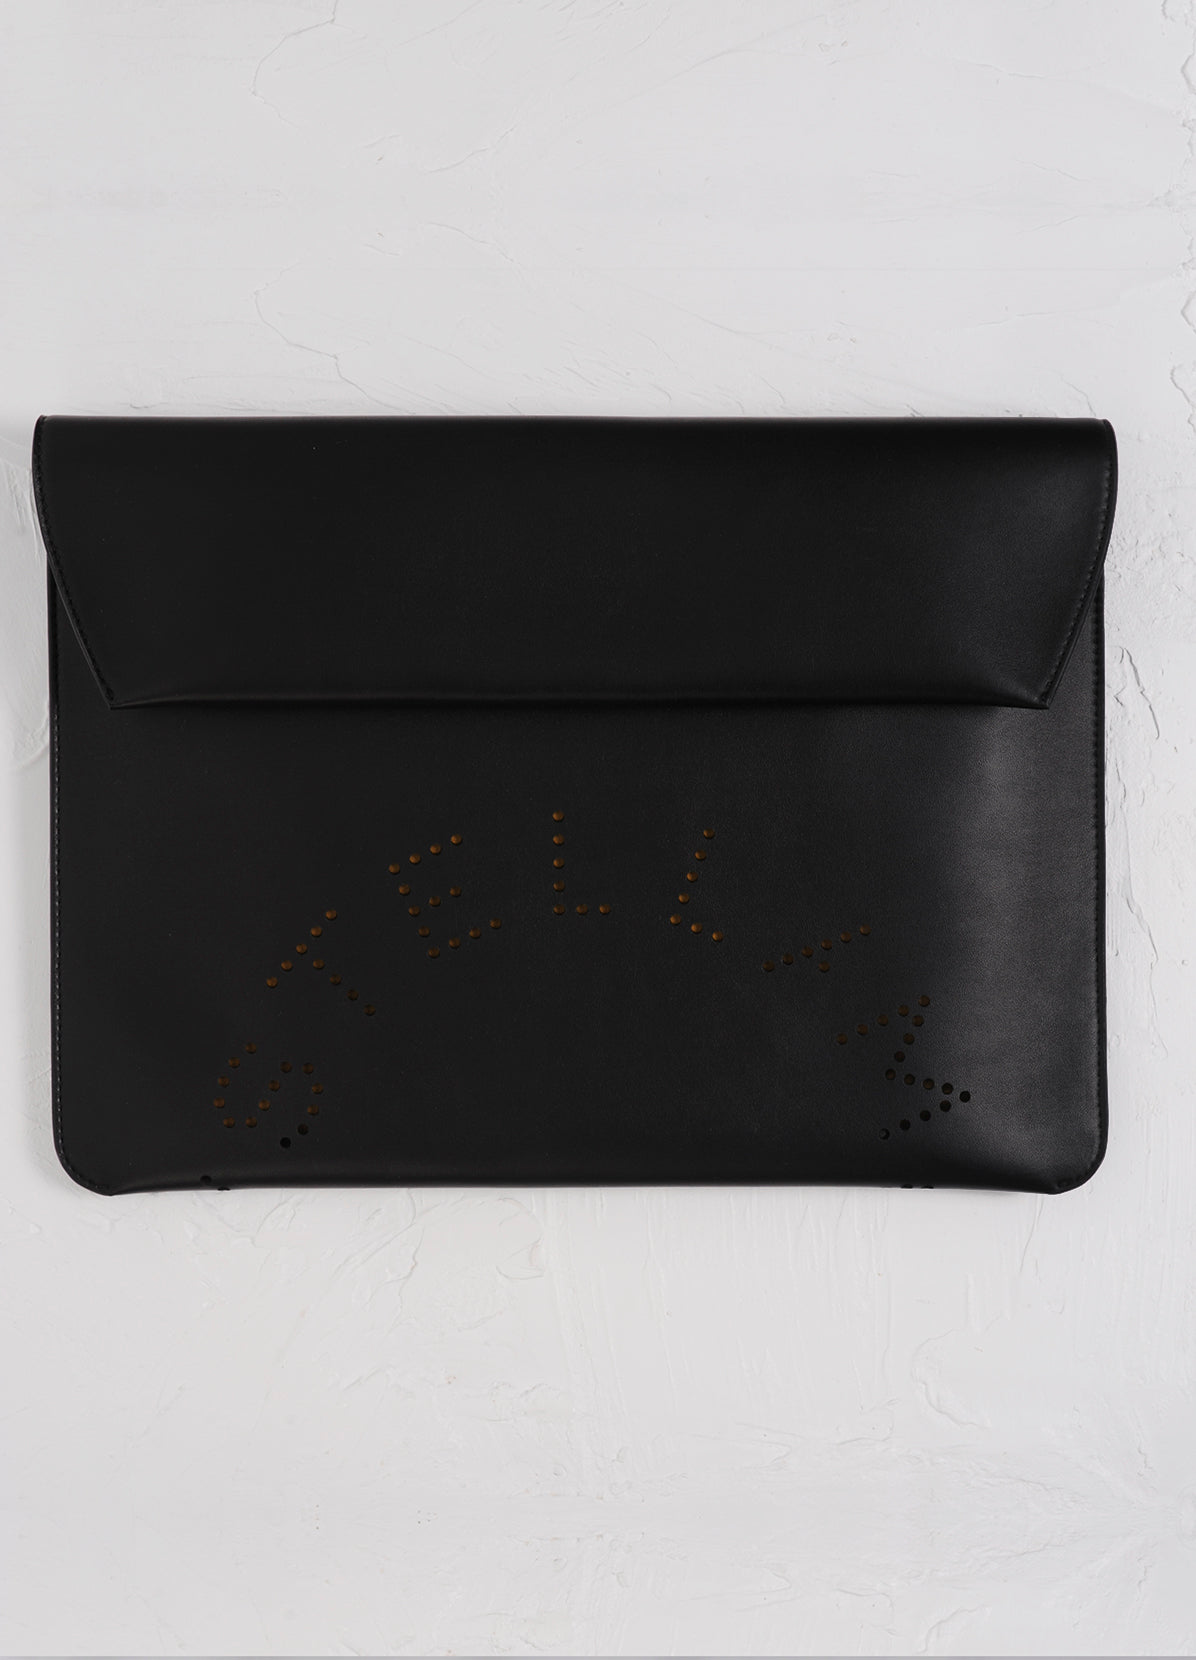 ENVELOPPE CASE WITH PERFORATED LOGO